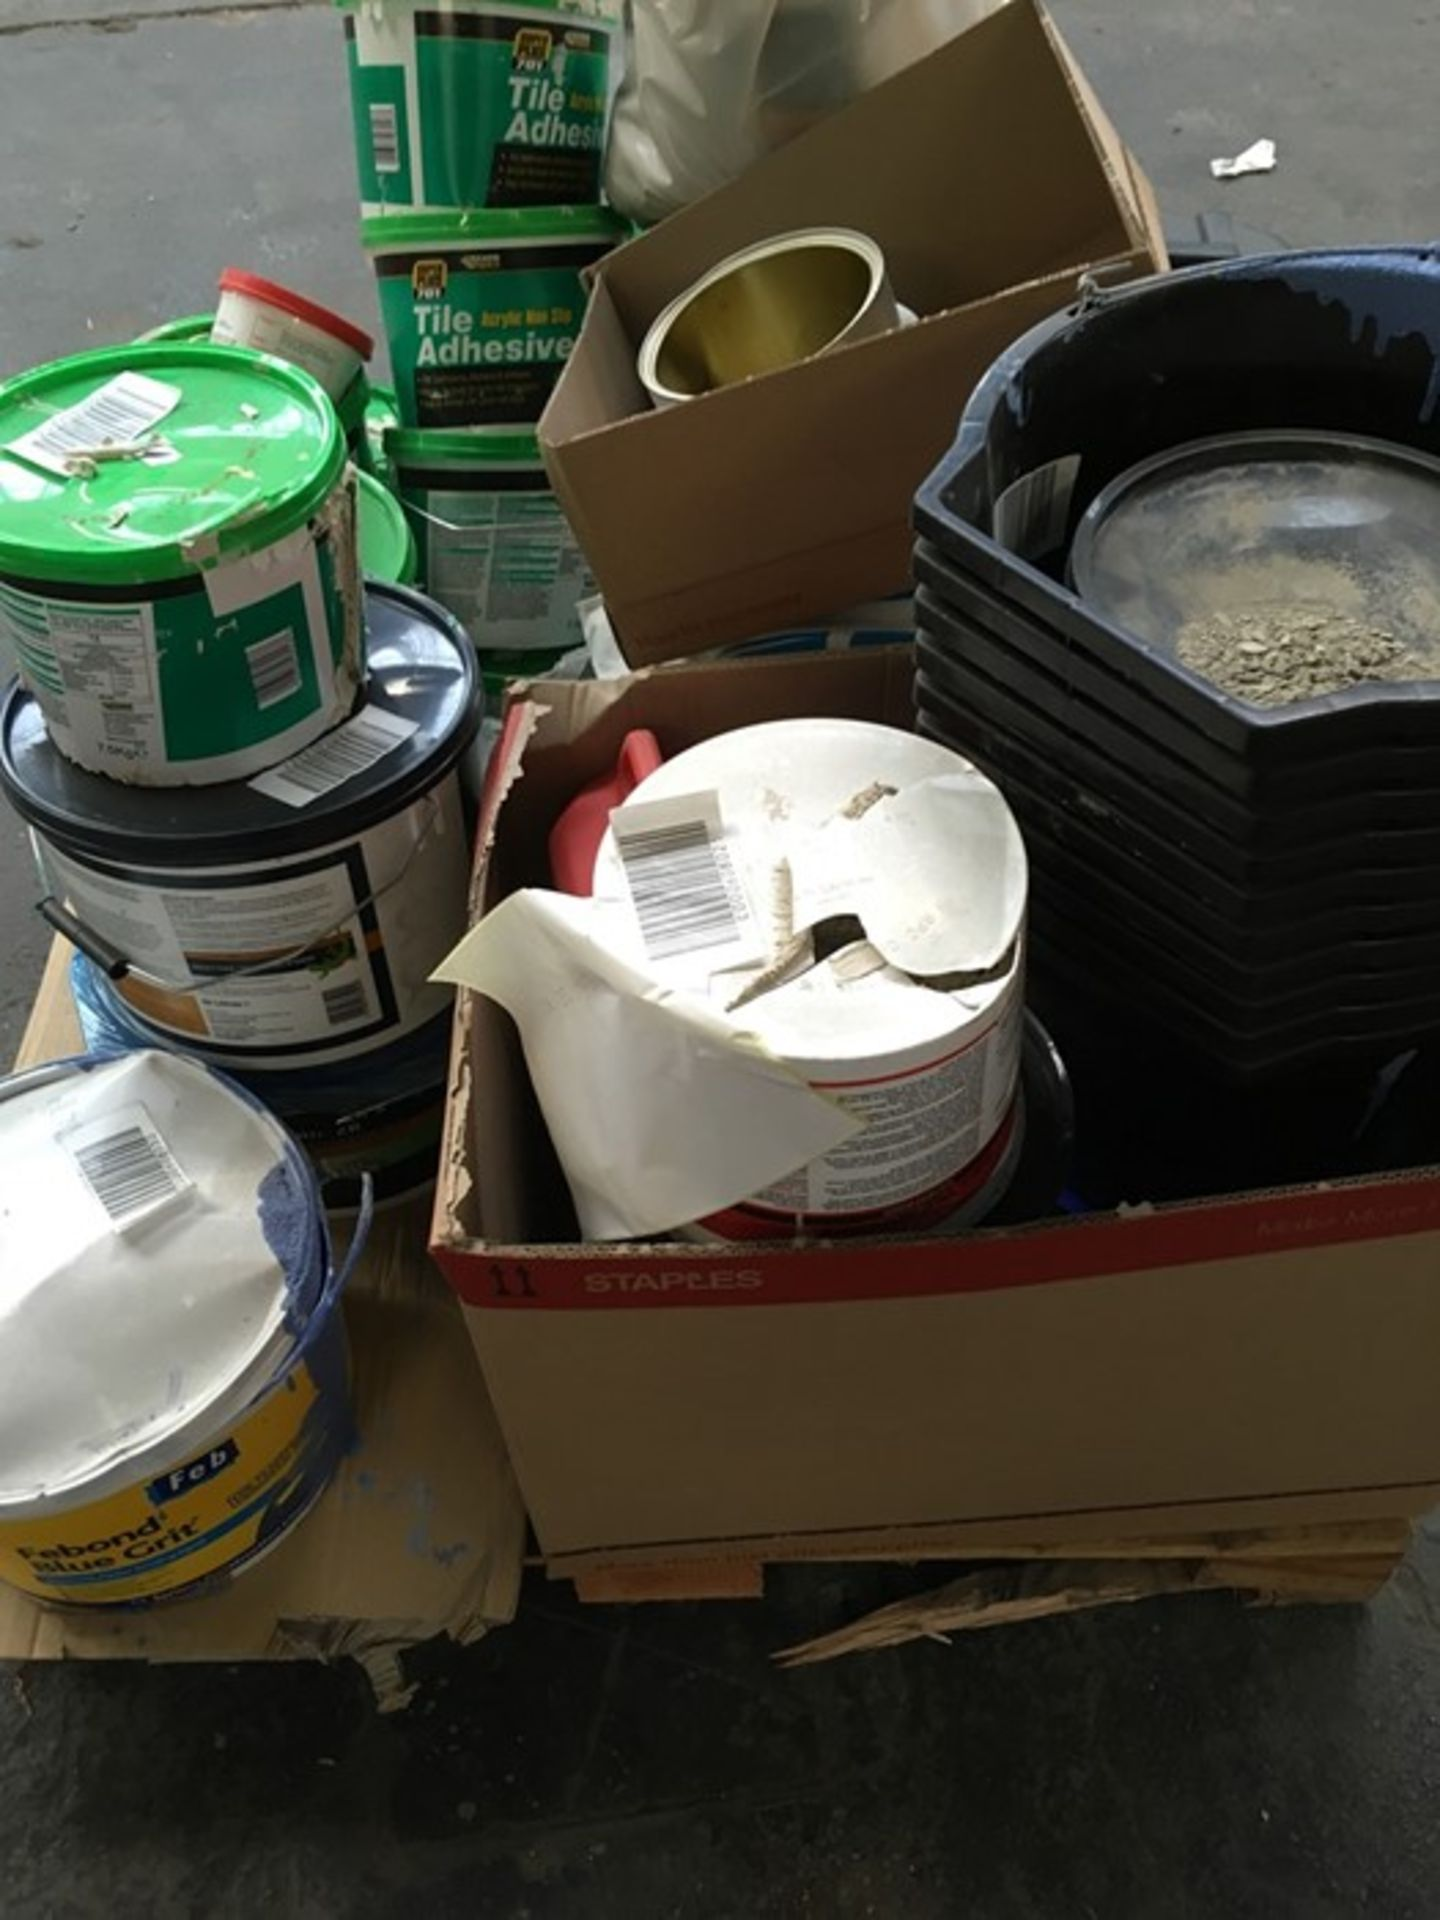 Lotto 23 - 1 LOT TO CONTAIN ASSORTED DIY AND BUILDING PRODUCTS / INCLUDING TILE ADHESIVE, MORTAR PLASTICISER